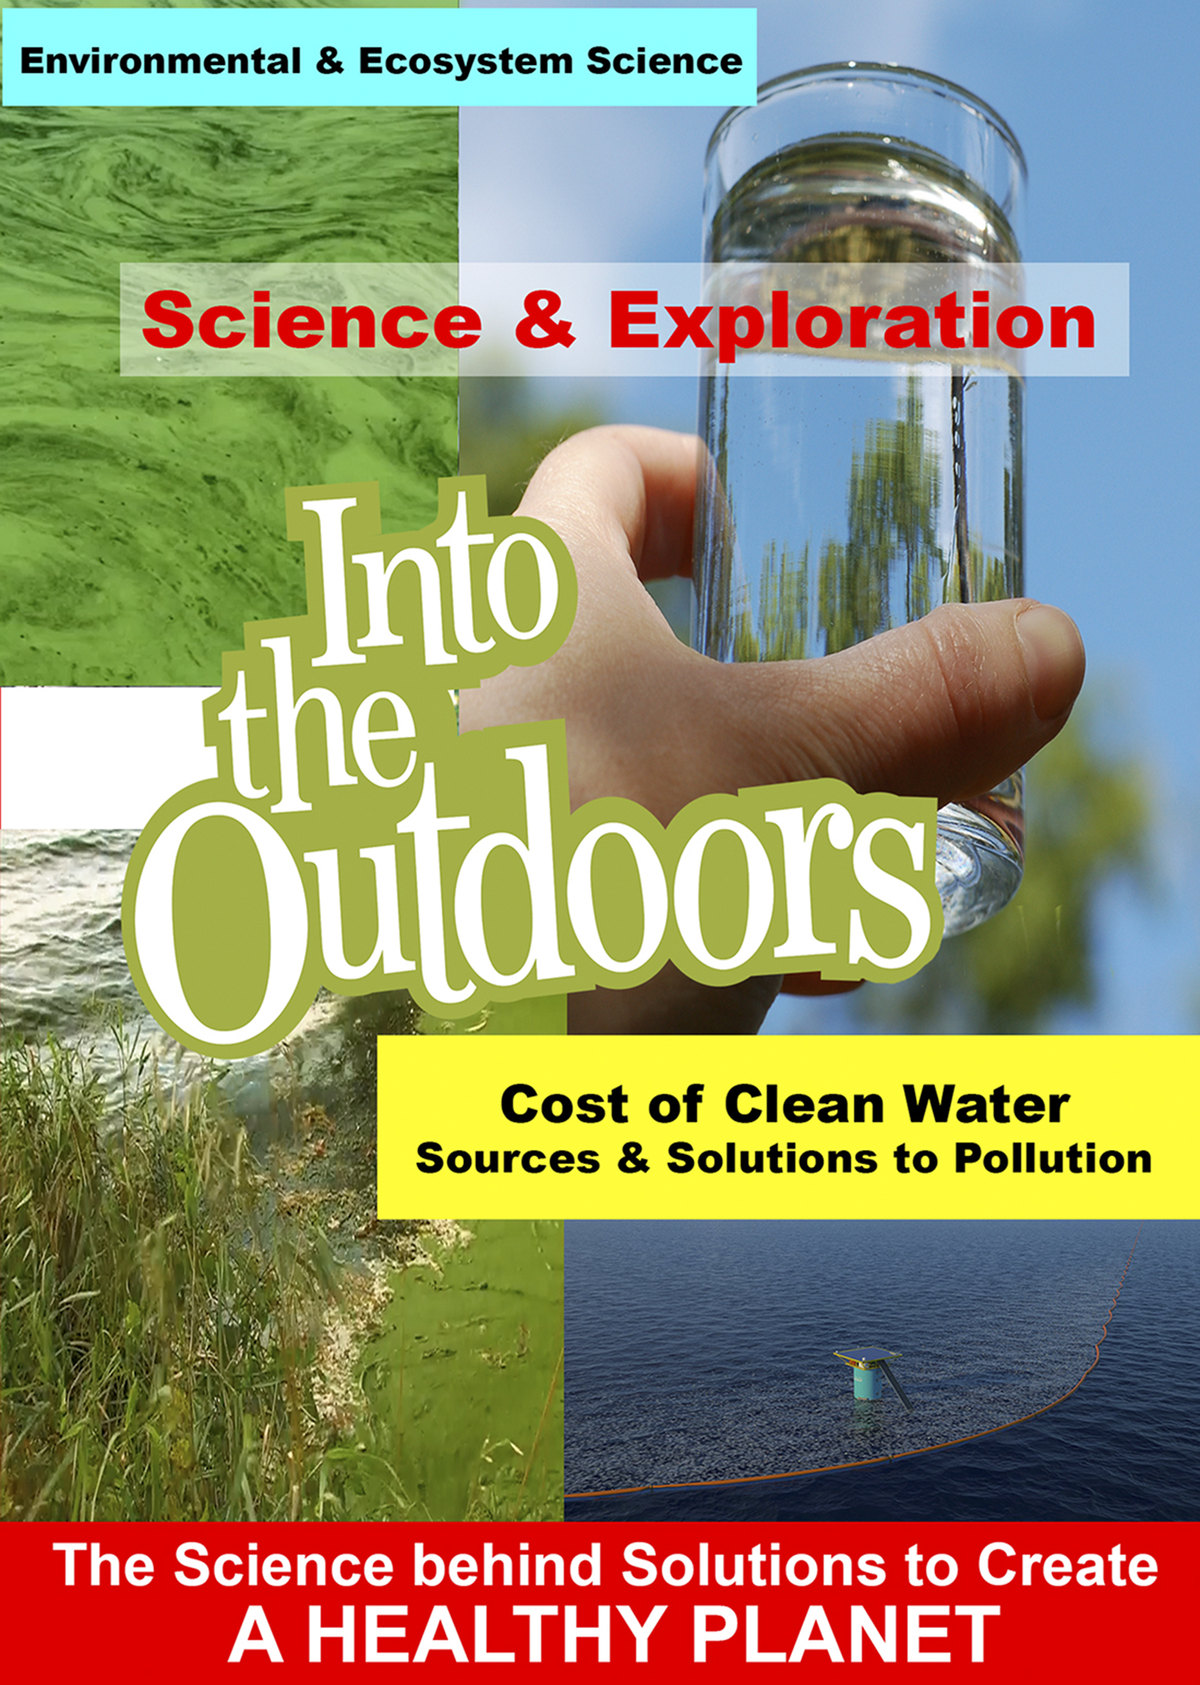 K4972 - Cost of Clean Water - Sources & Solutions to Pollution